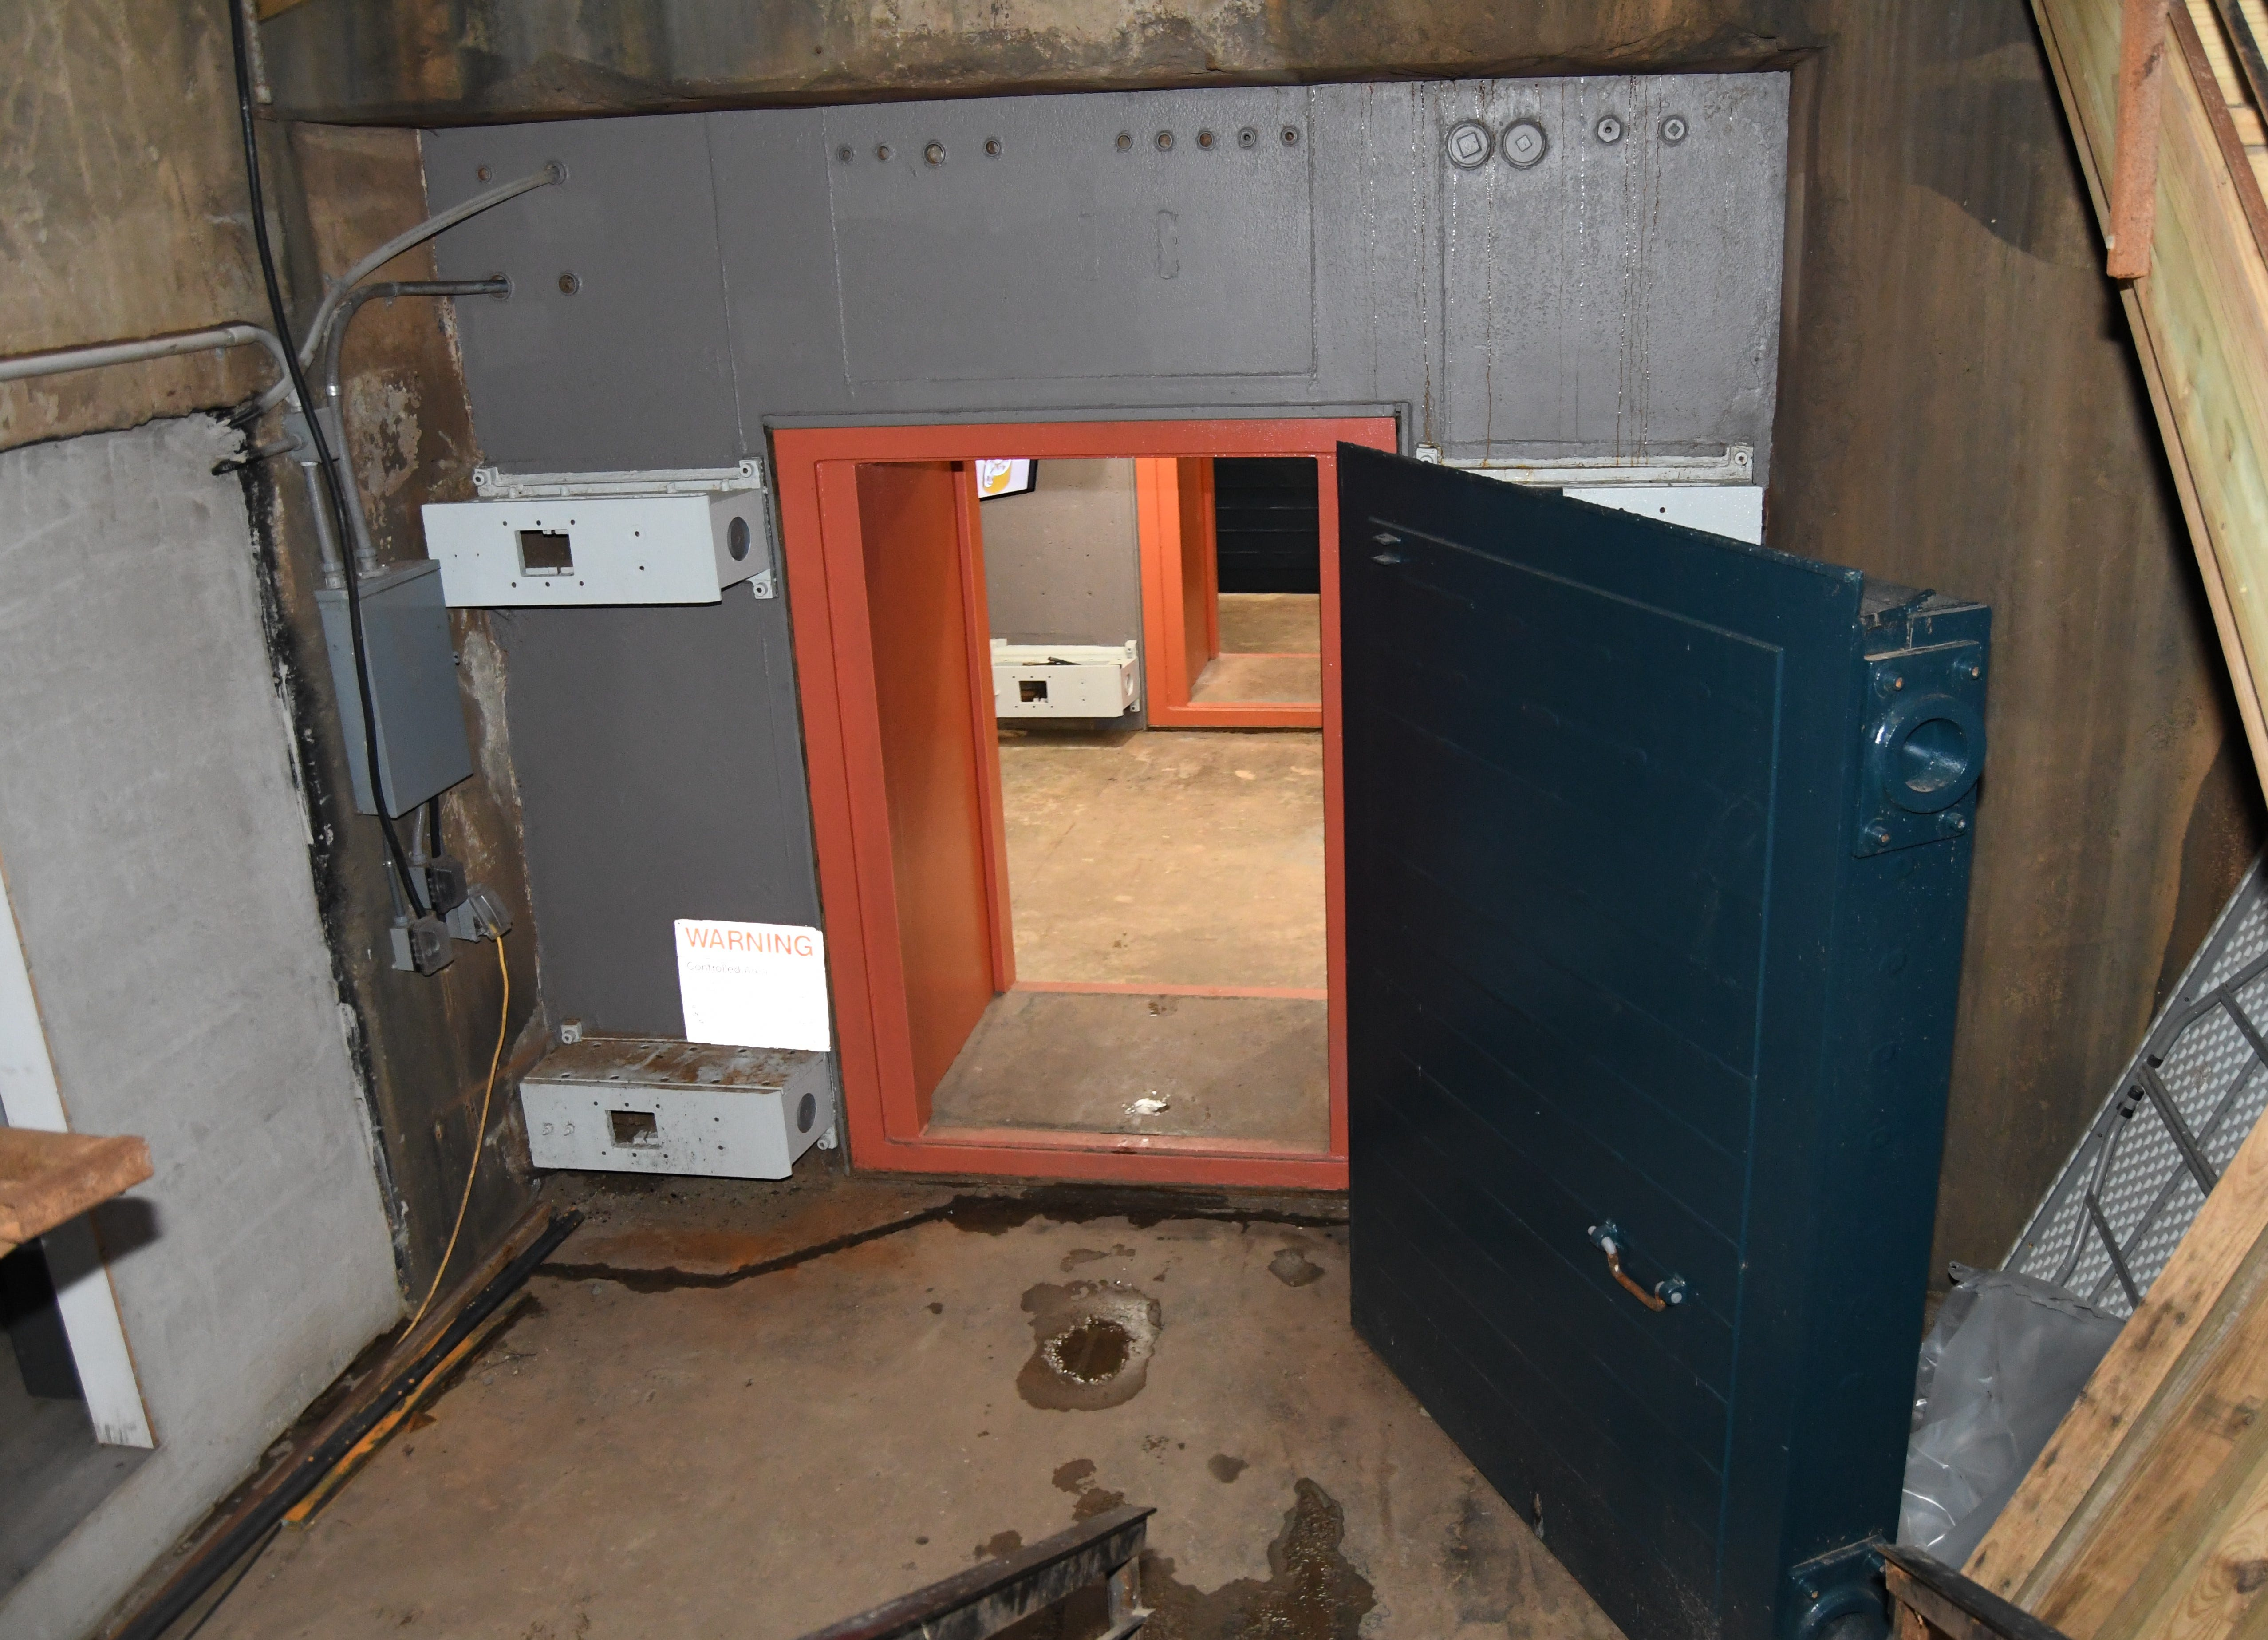 Upon descending down the stairs, visitors are greeted by two 6,000-pound doors, designed to withstand 1,000 psi of pressure.